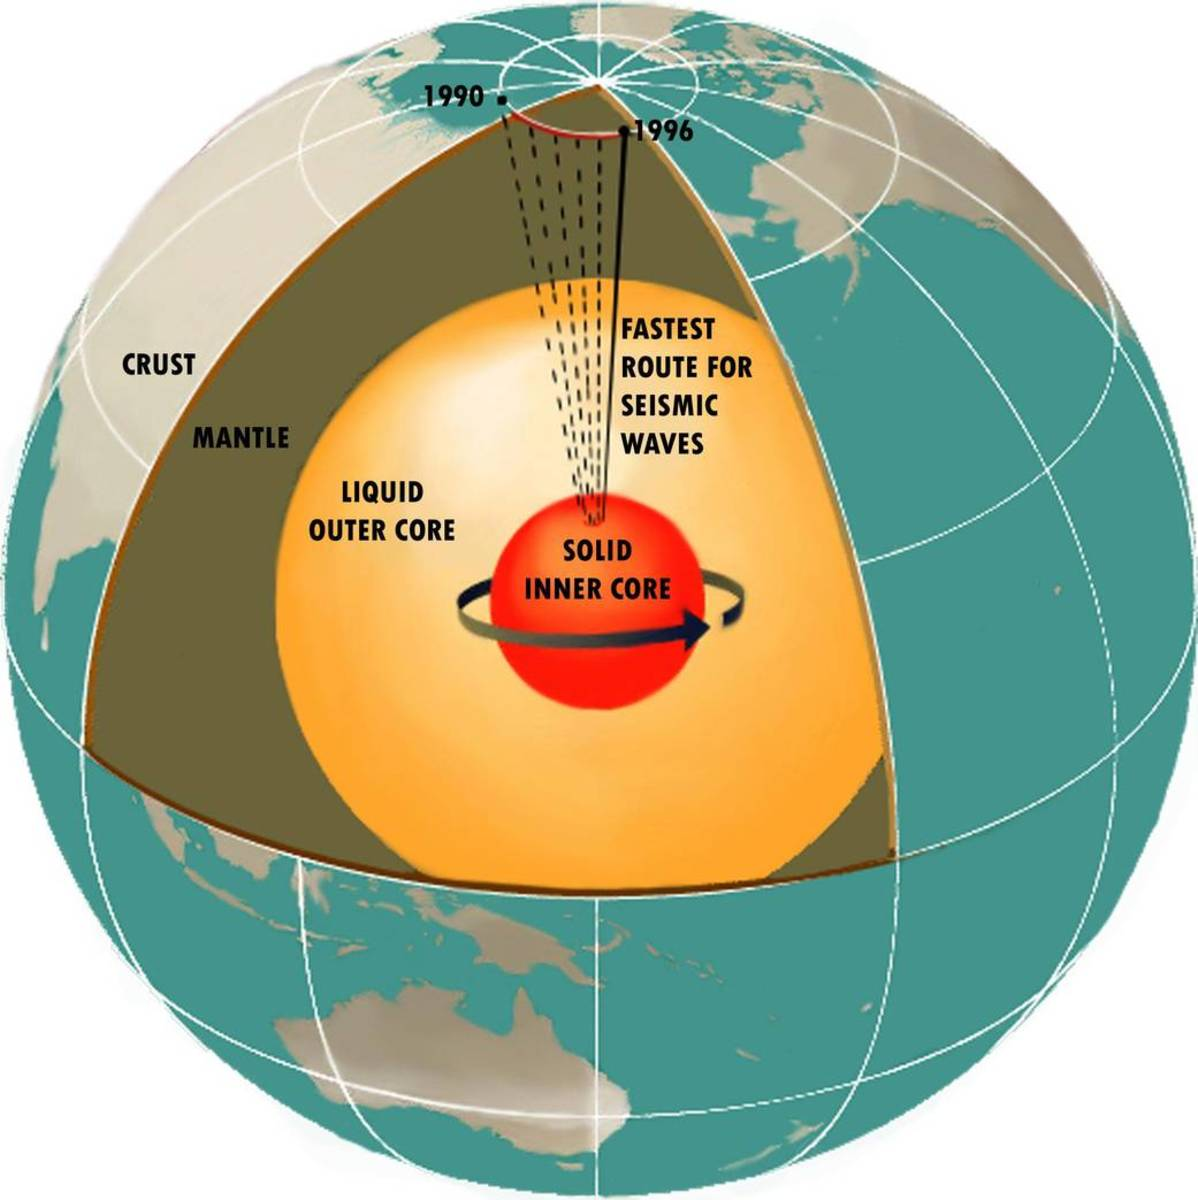 A diagram of the earth's core, including the movement of magnetic north between 1990 and 1996.